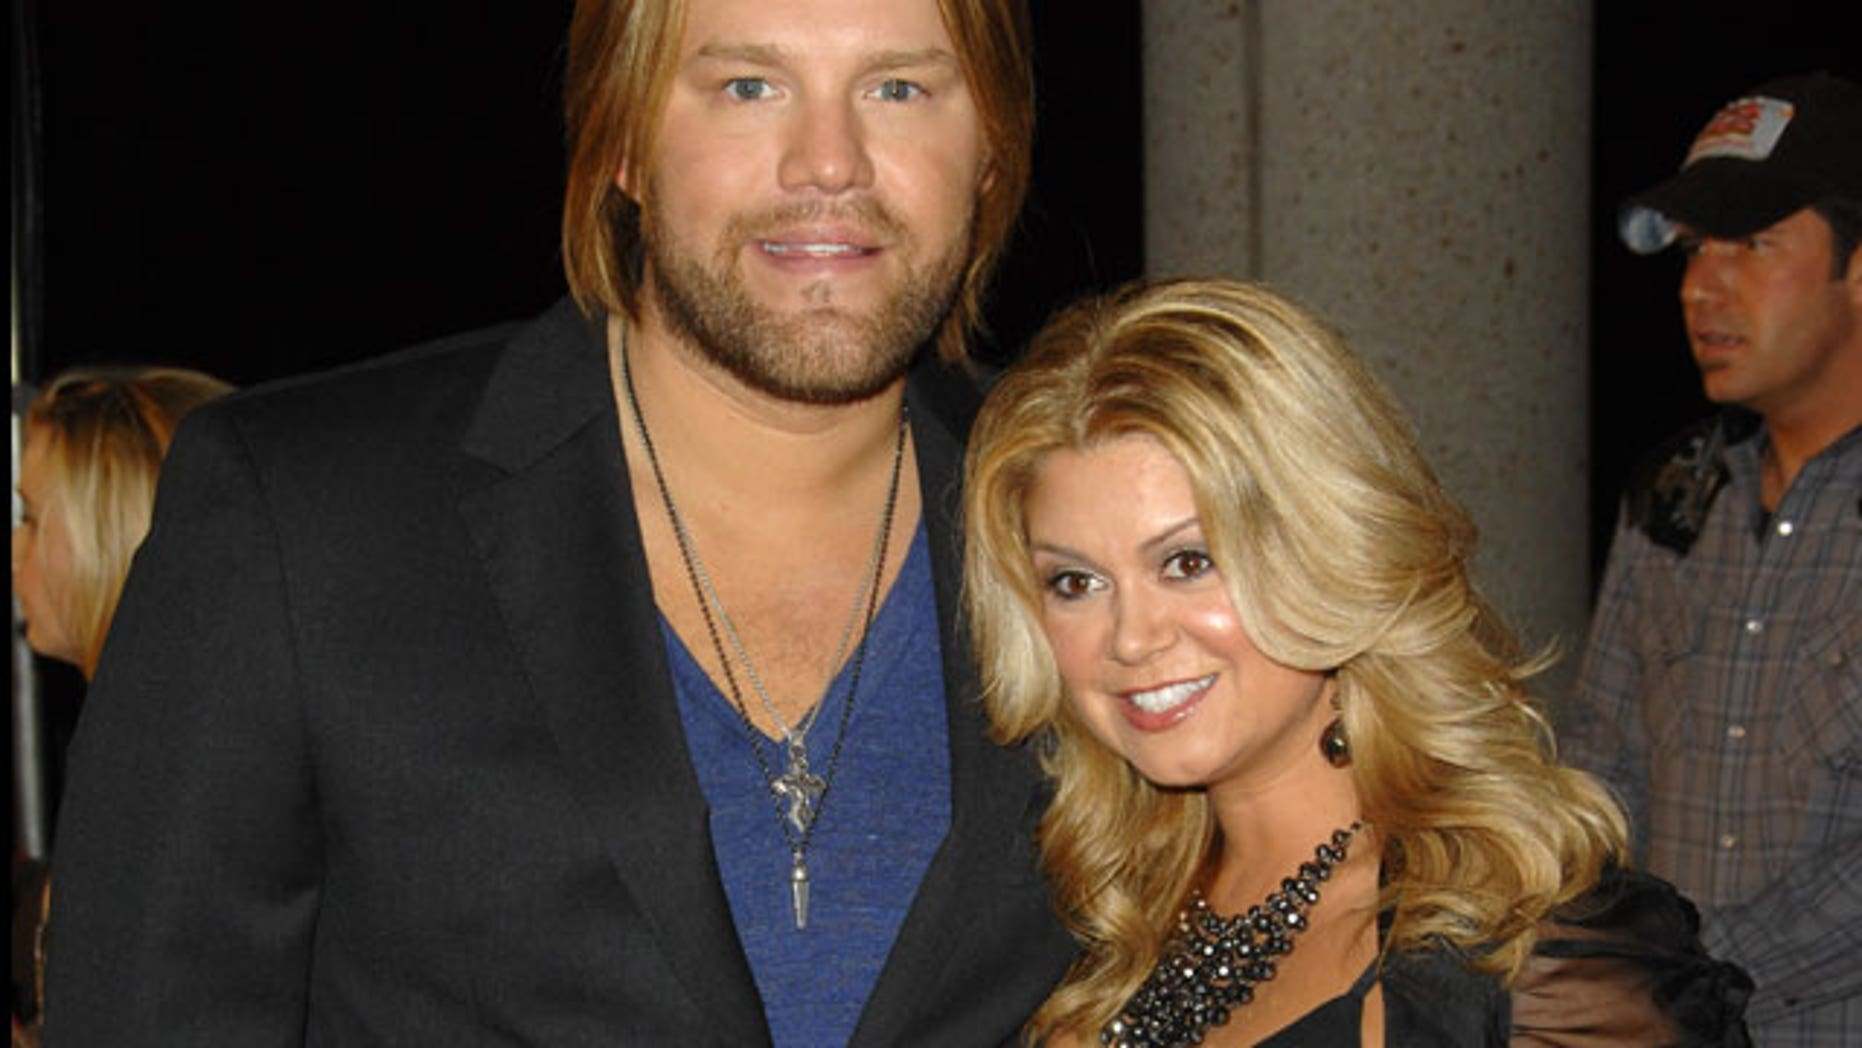 In this Nov. 10, 2009 file photo, recording artist James Otto and his wife Amy attend the 57th Annual BMI Country Awards in Nashville, Tenn.